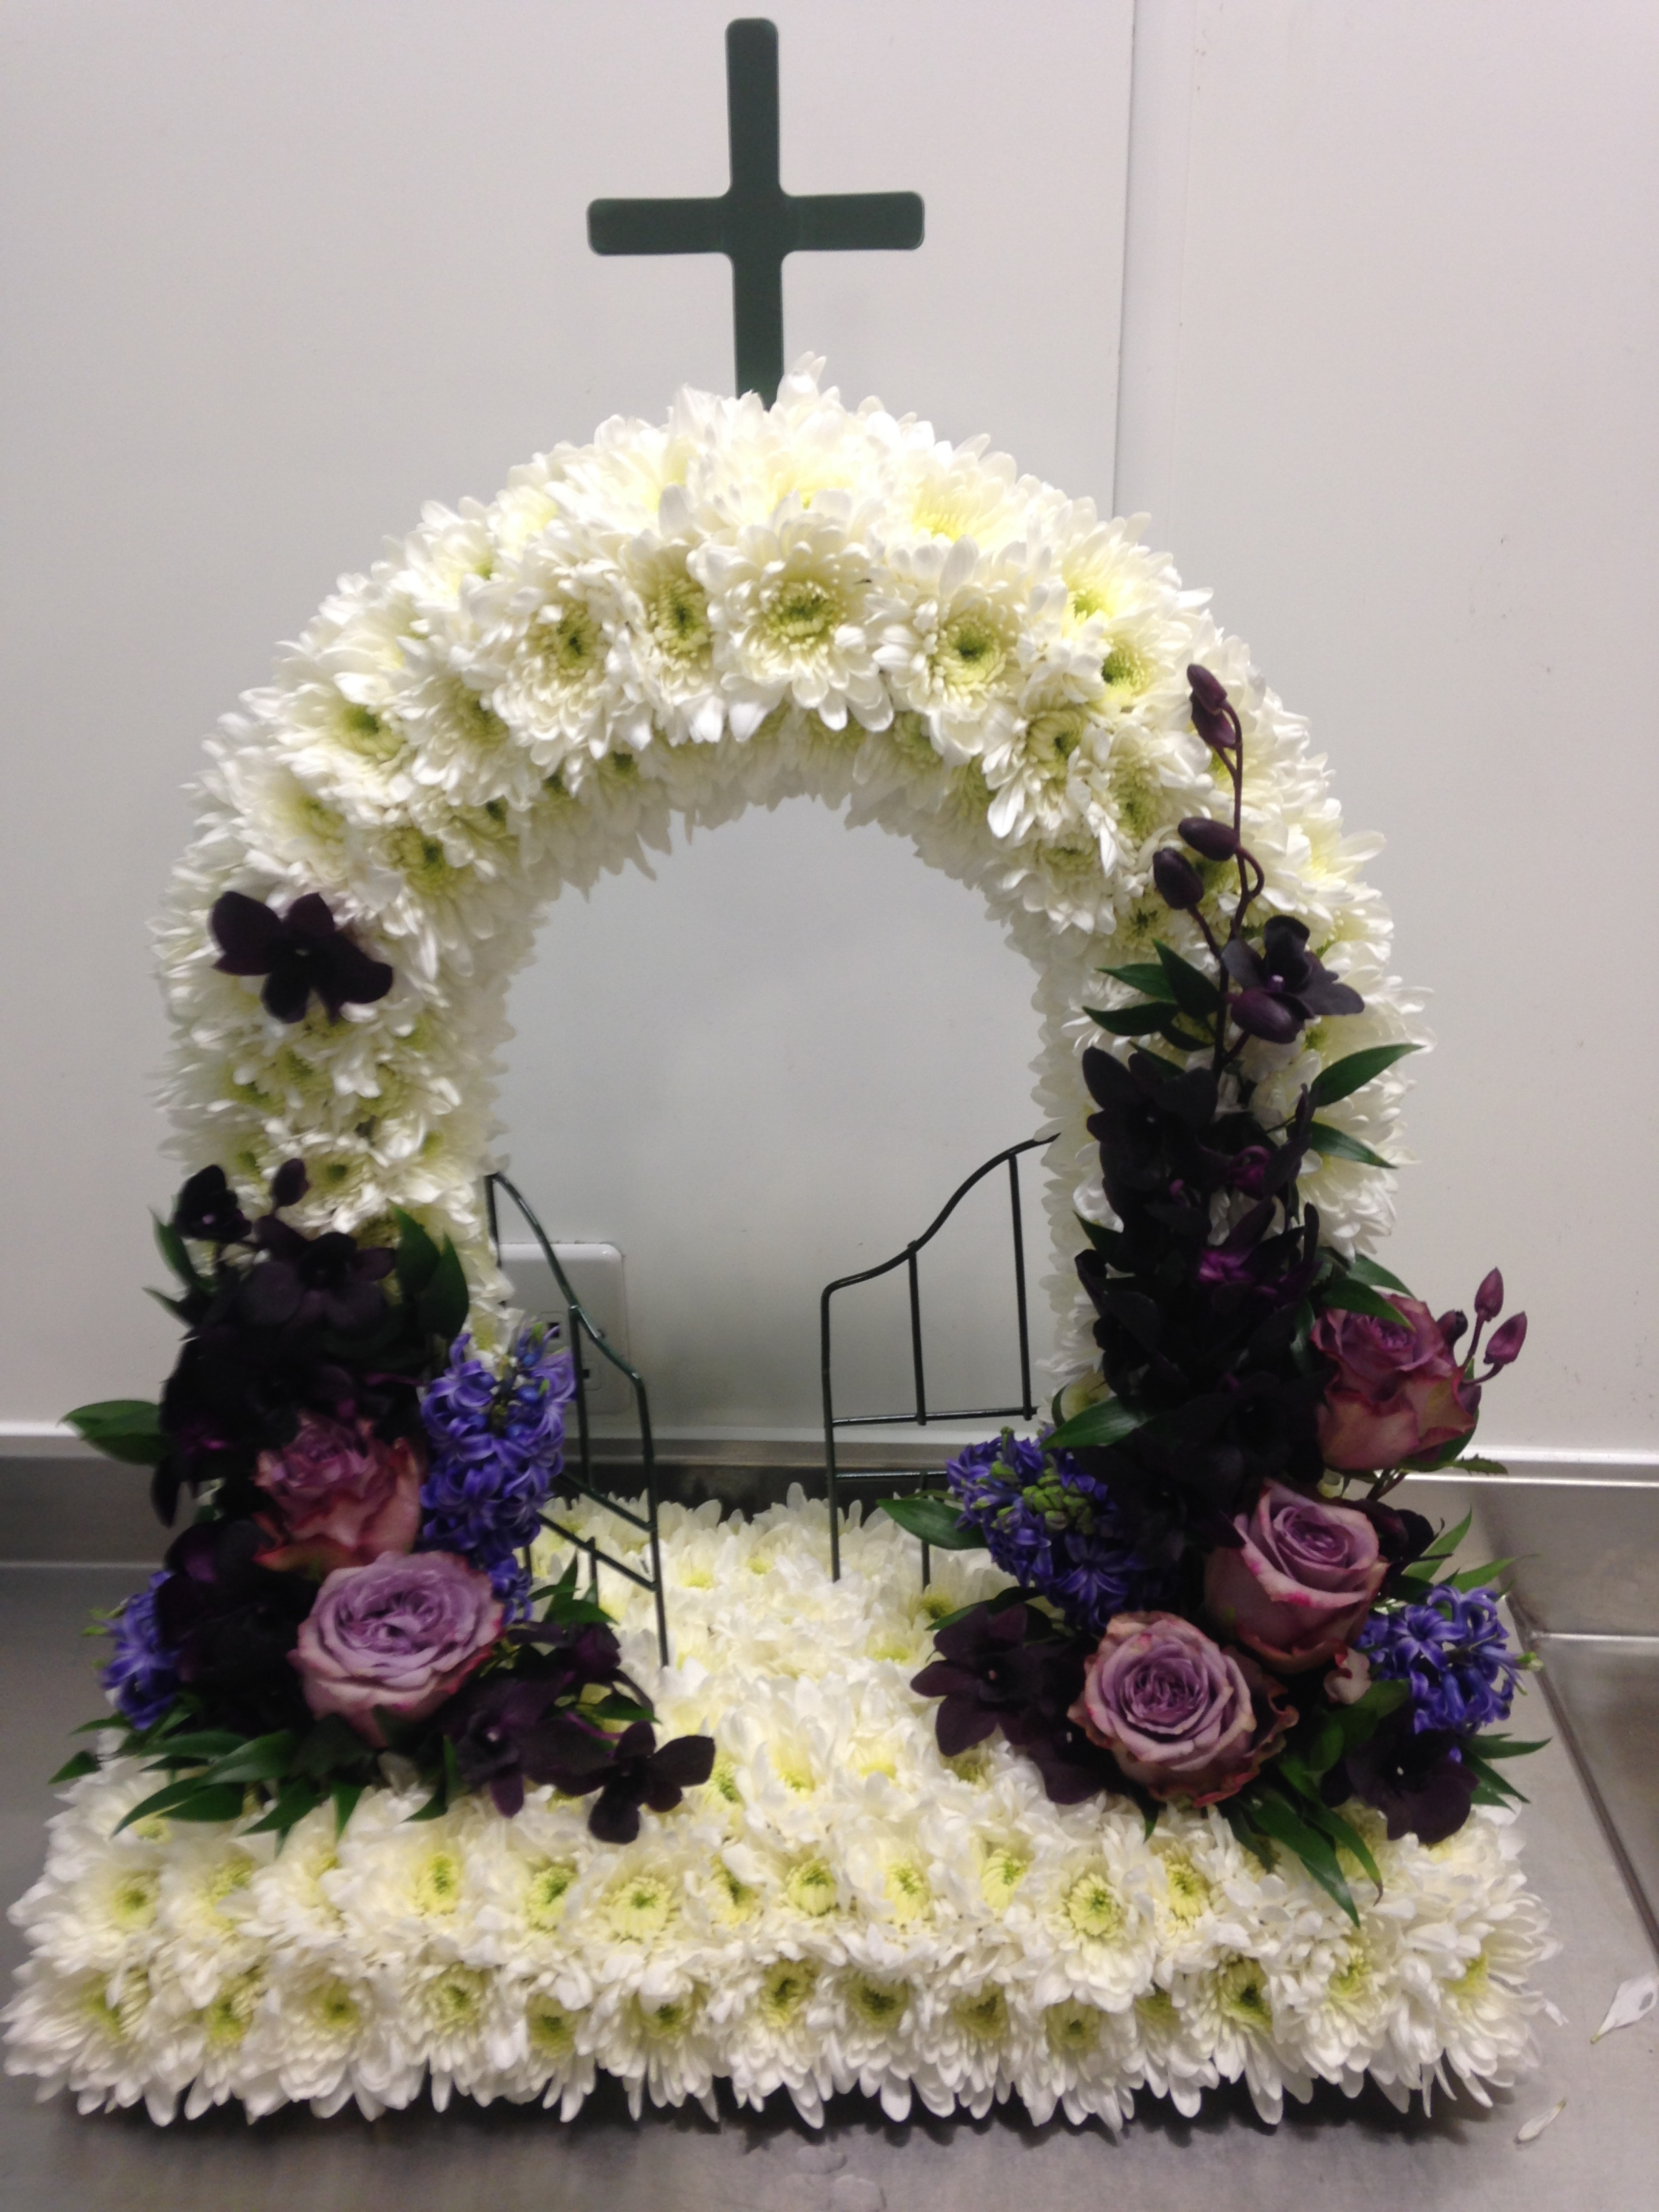 Funeral flowers blackburn le rainflorist we deal directly with funeral directors to ensure flowers are delivered at exactly the right time so they will always look at their best izmirmasajfo Image collections